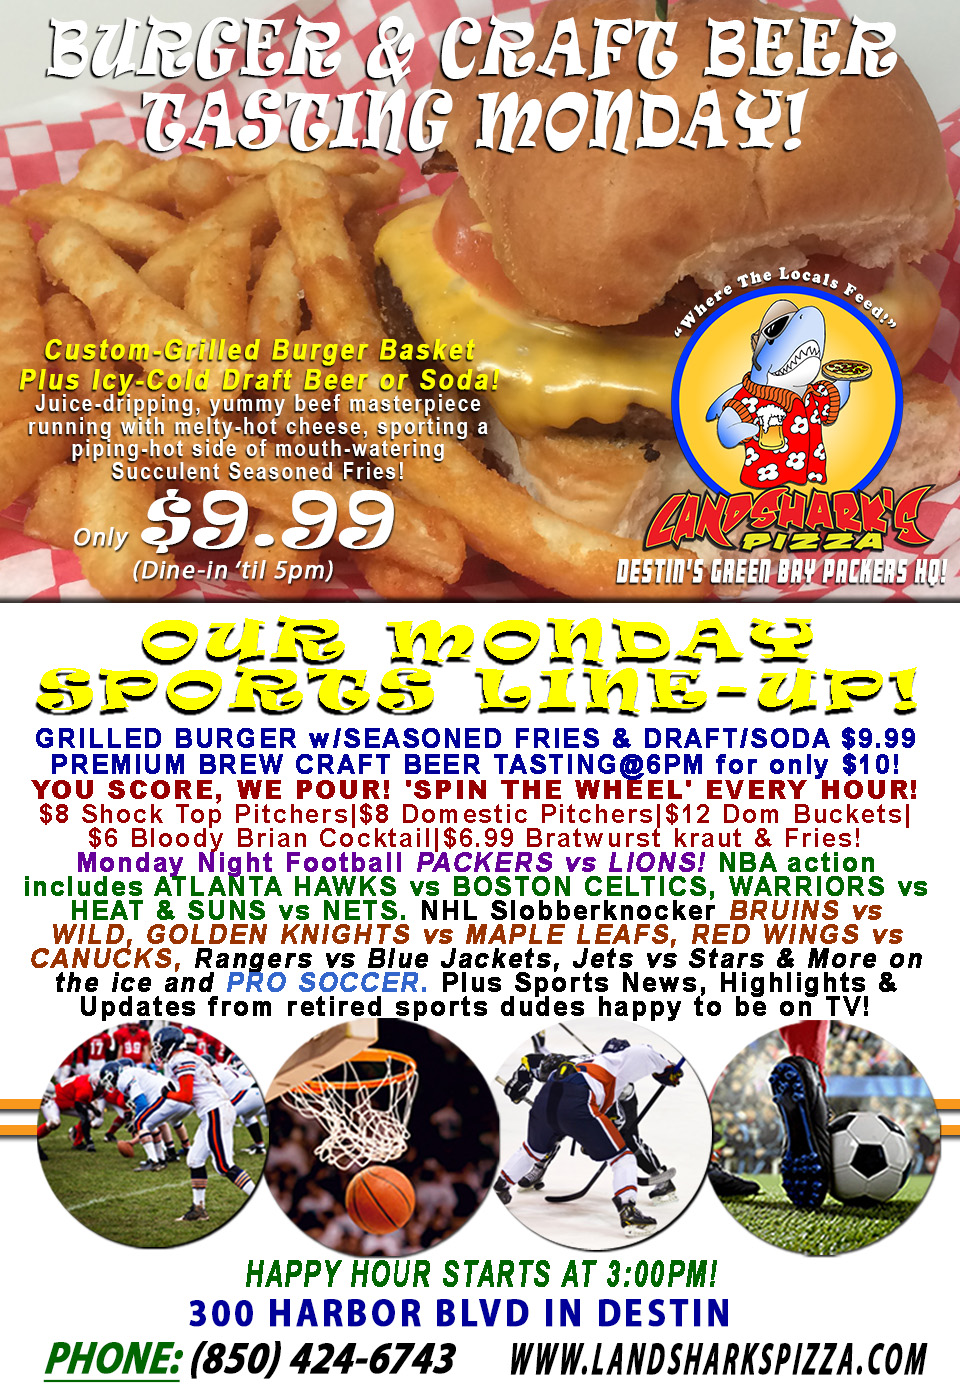 Burger & Brew Monday PACKERS vs LIONS YOU SCORE, WE POUR – $9.99 Grilled Basket & CRAFT BEER TASTING@6PM!